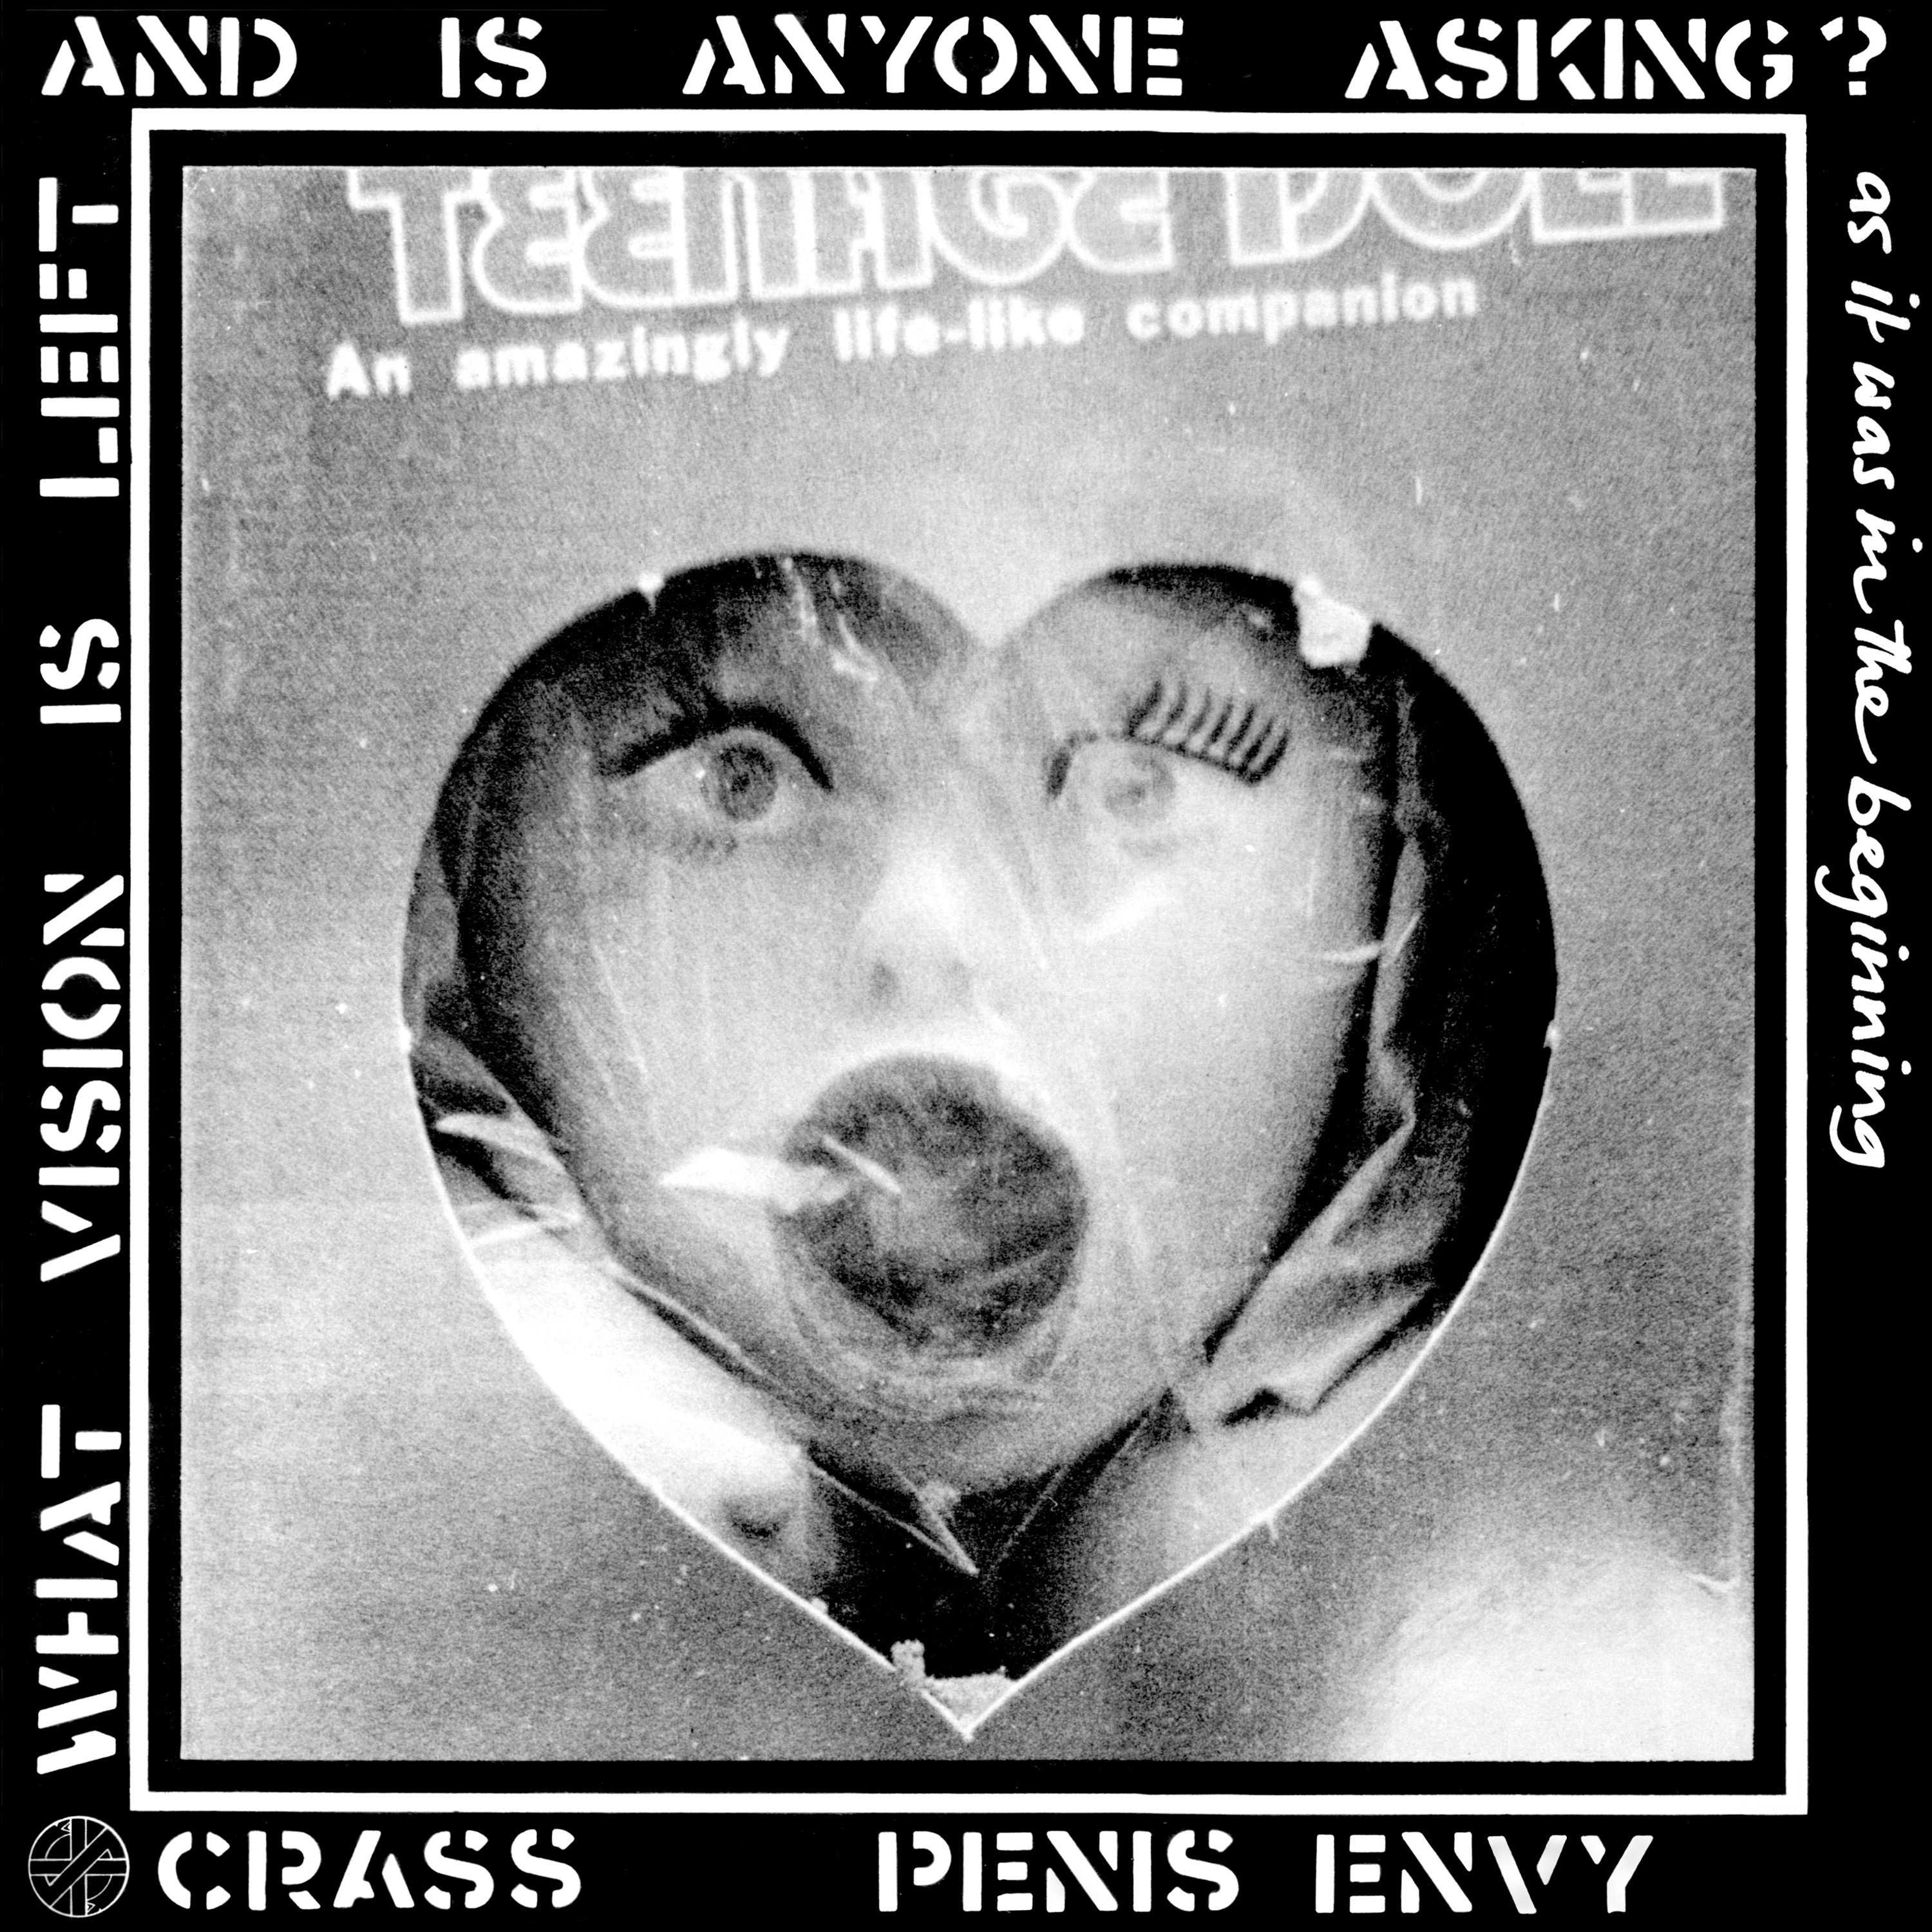 Crass - Penis Envy LP